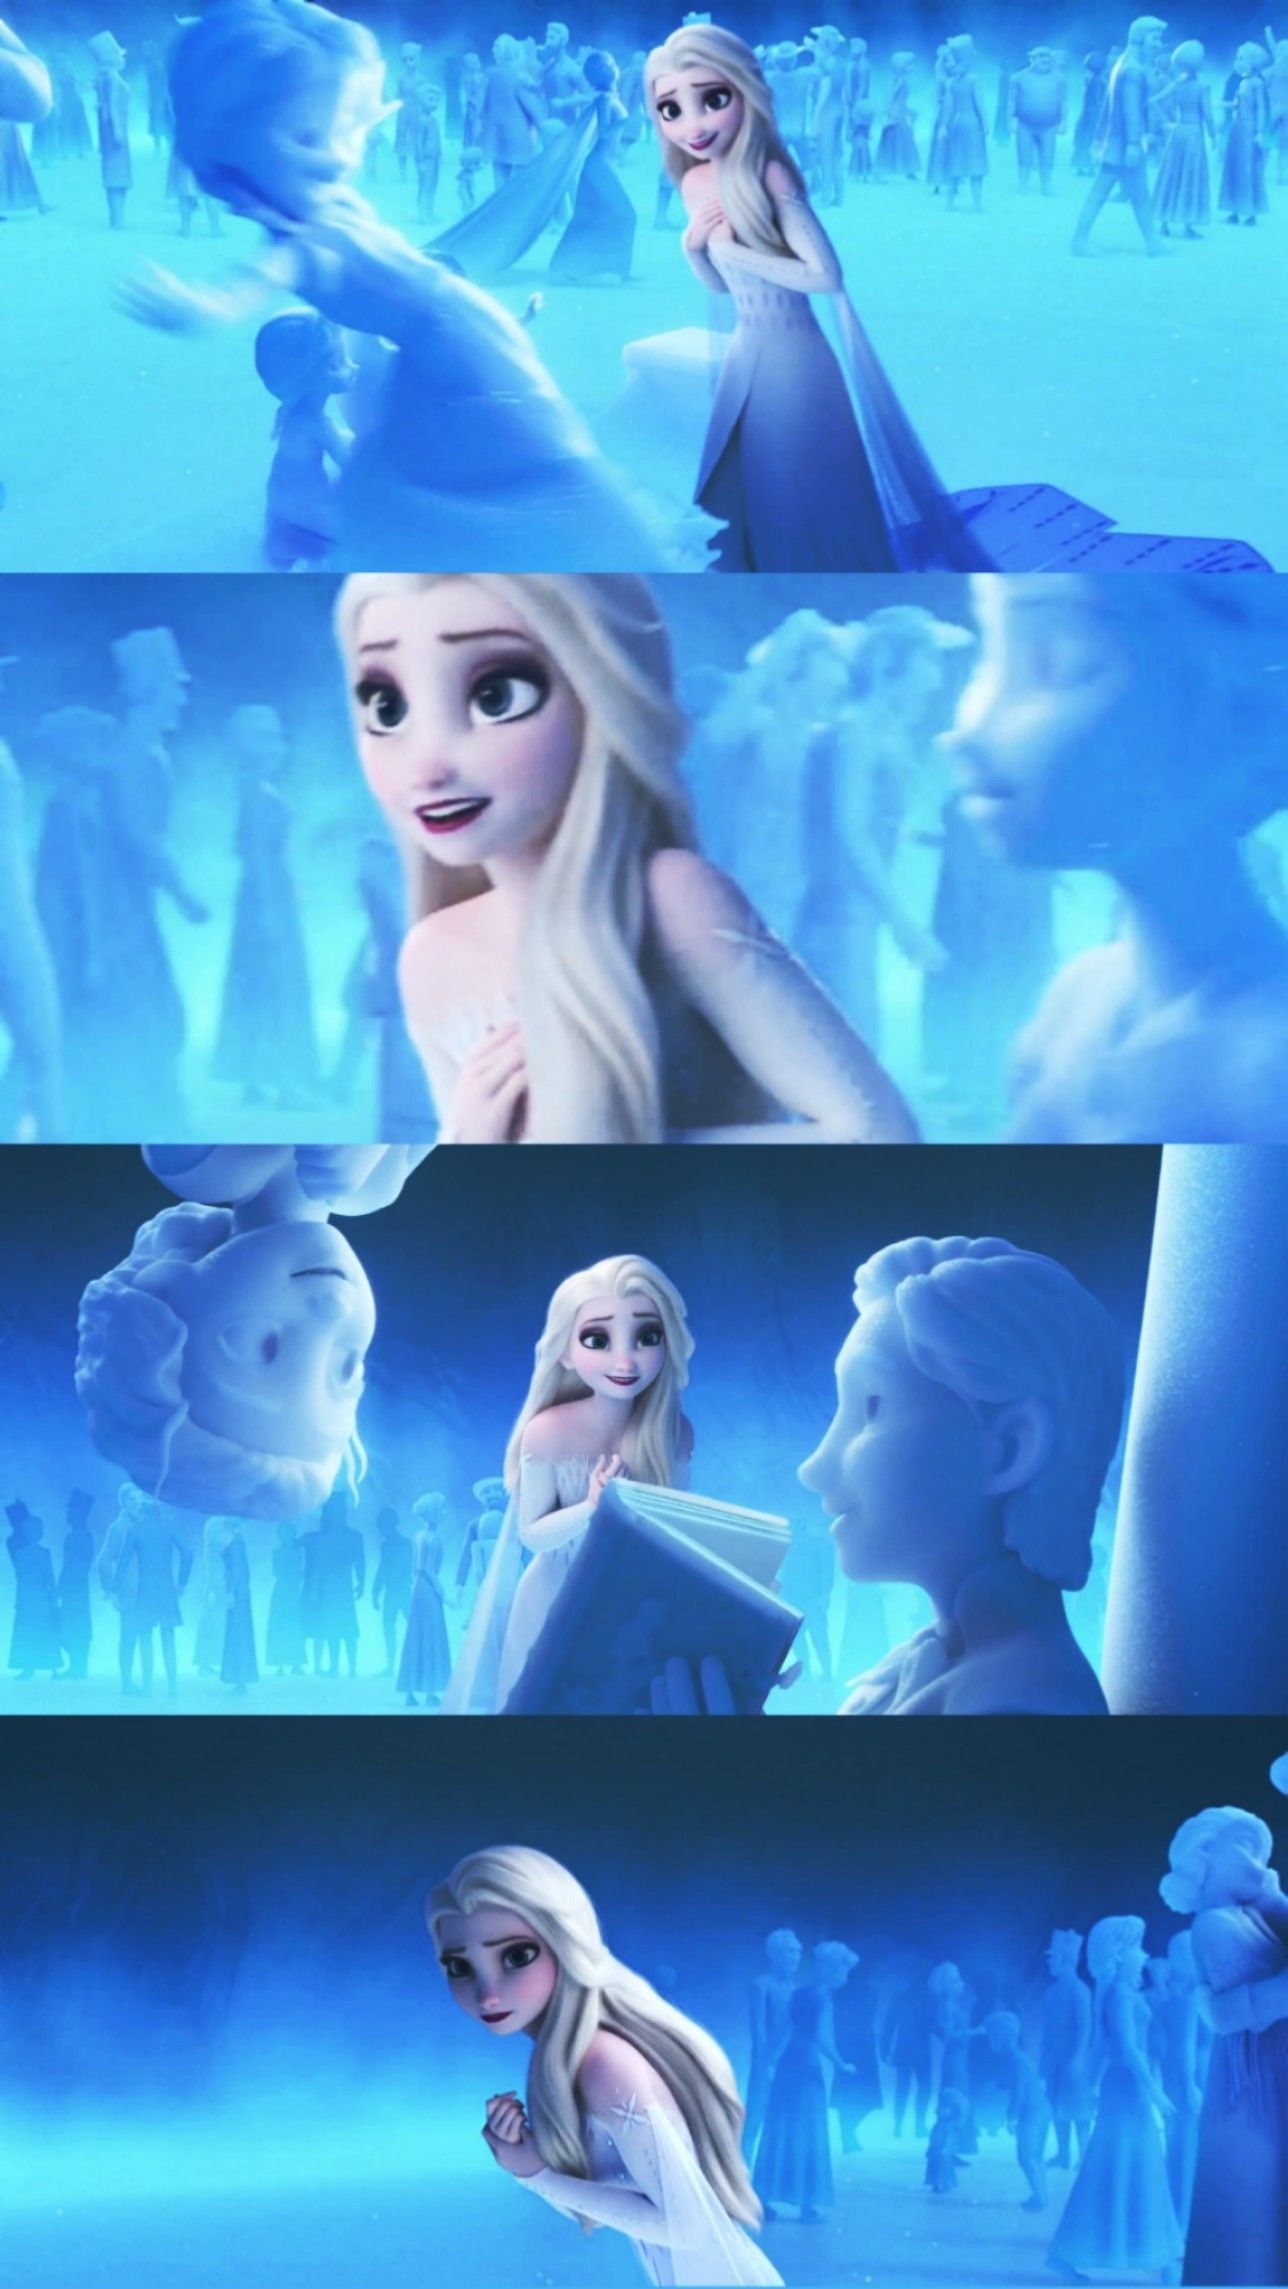 Elsa And Jack Frost Frozen 2 Rise Of The Guardians Jack Frost Rise Of The Guardians Disney Princess Pictures